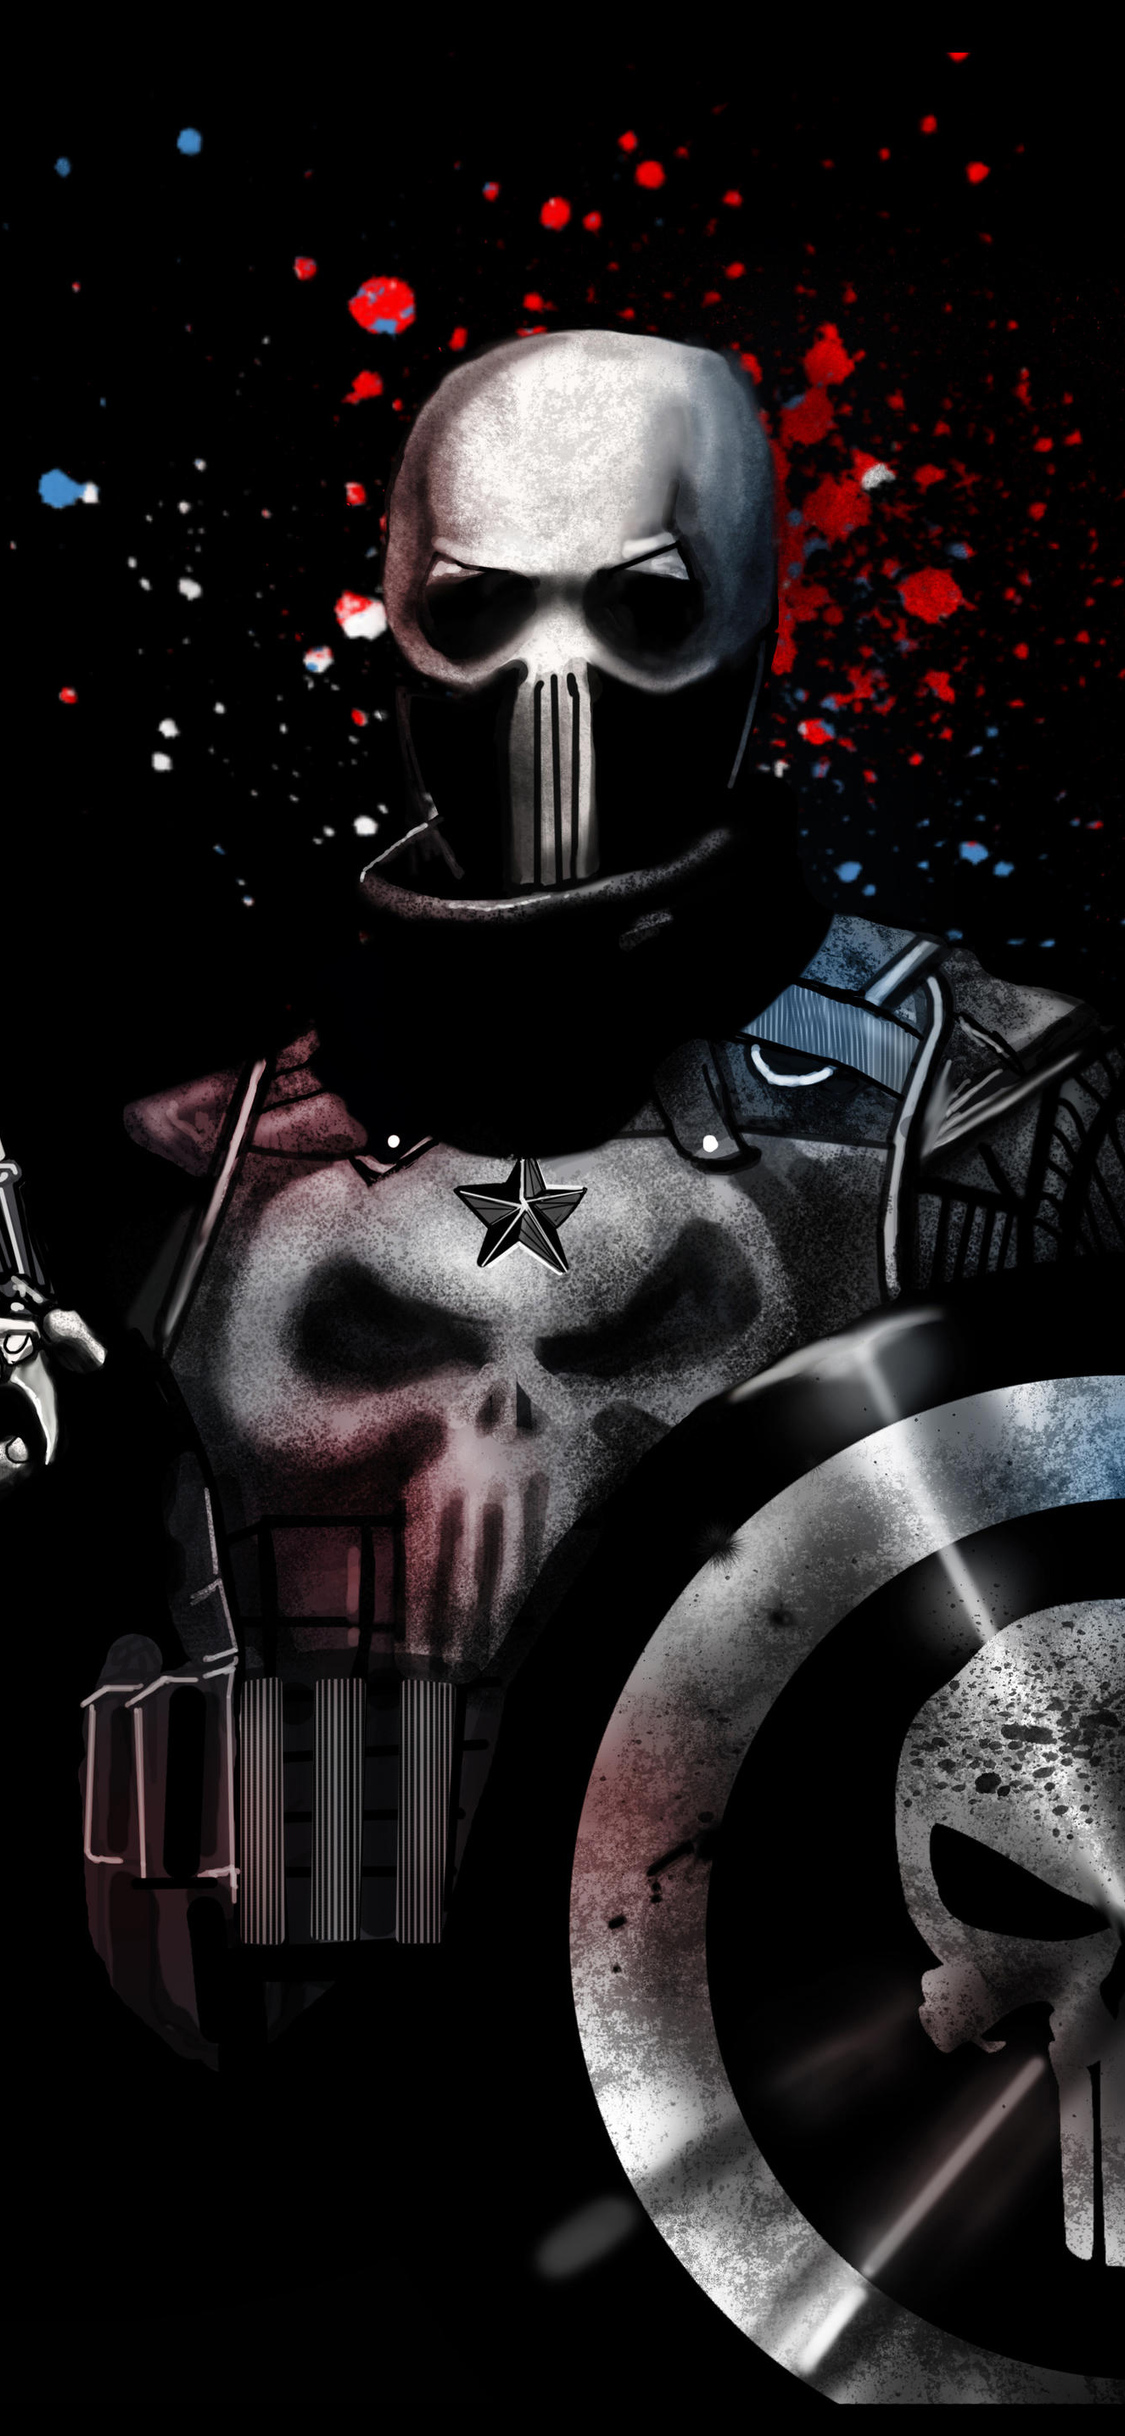 art-punisher-rx.jpg